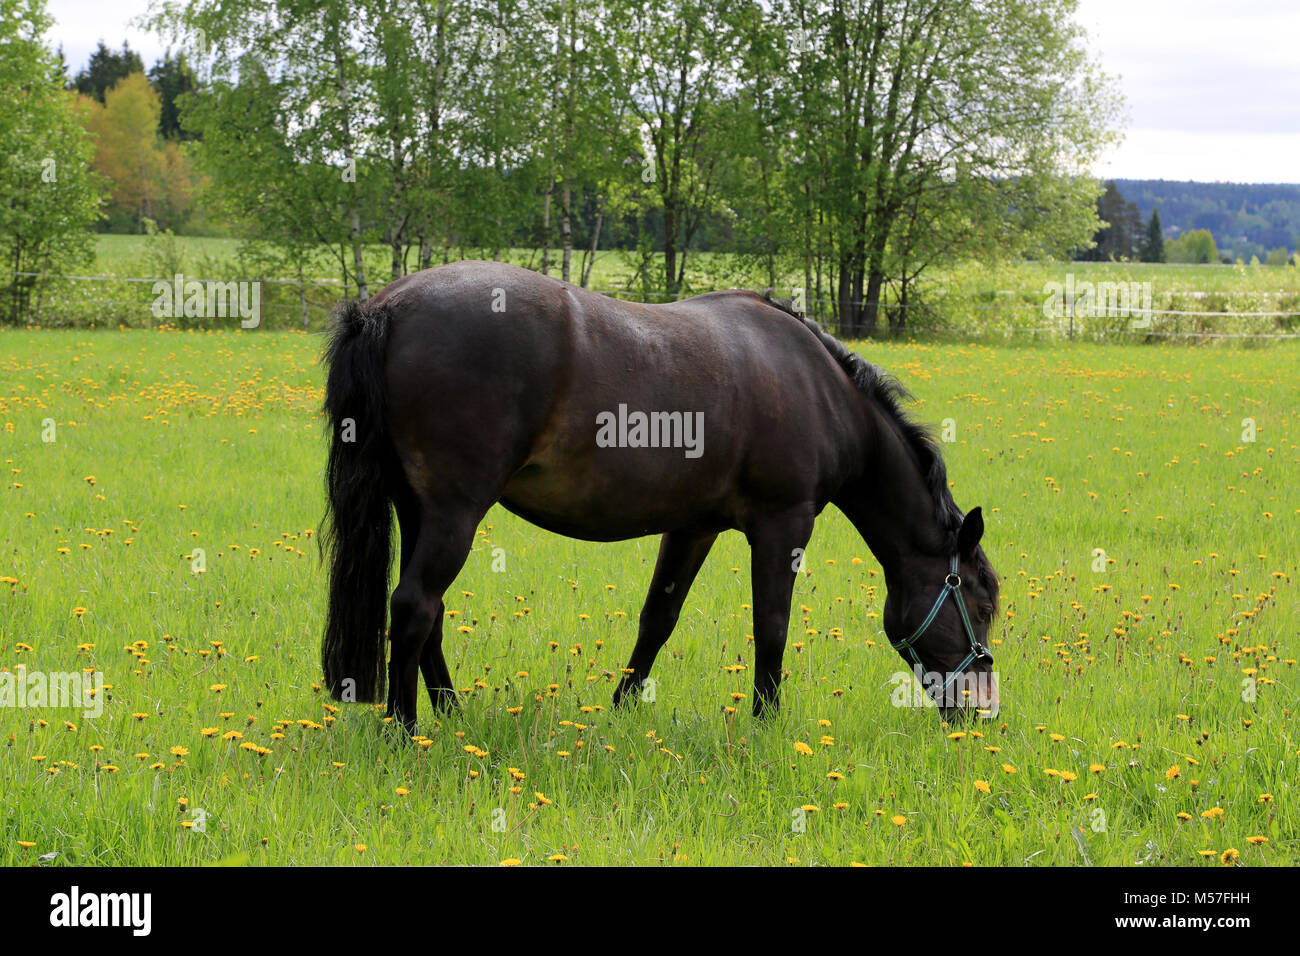 Black horse eating grass on green meadow at summer. - Stock Image